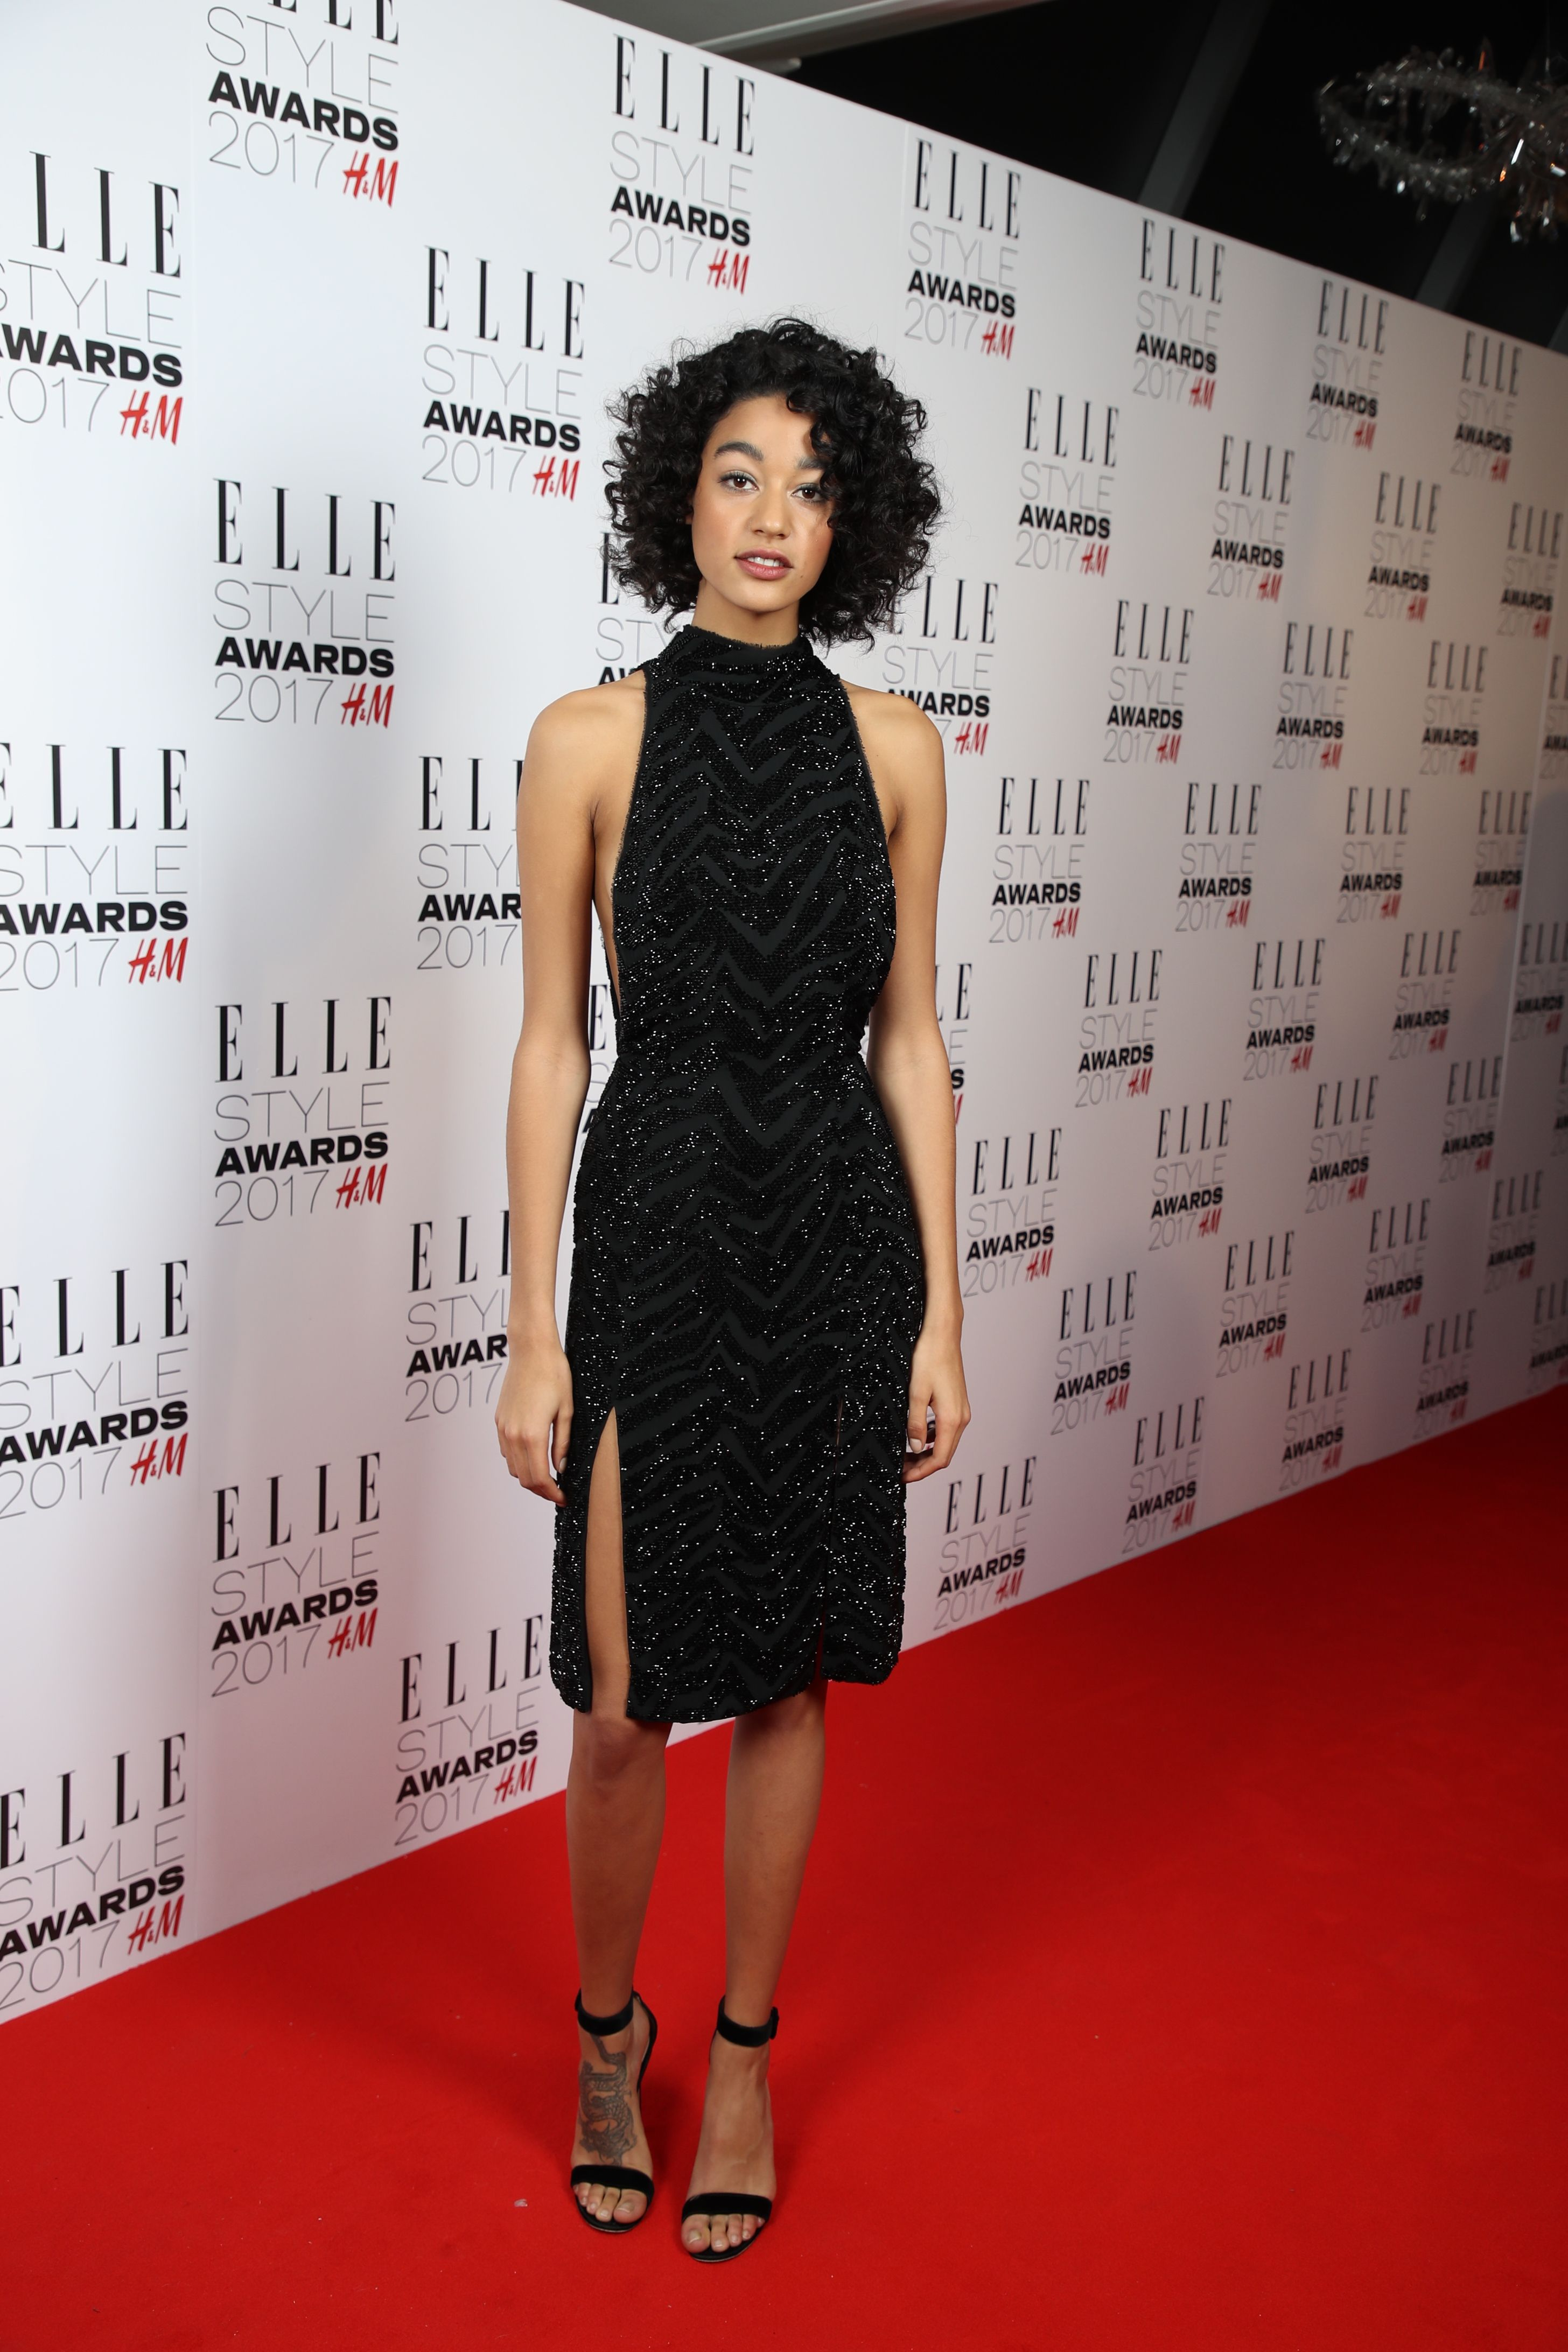 Celebrites Damaris Goddrie nude (78 foto and video), Sexy, Fappening, Instagram, braless 2017